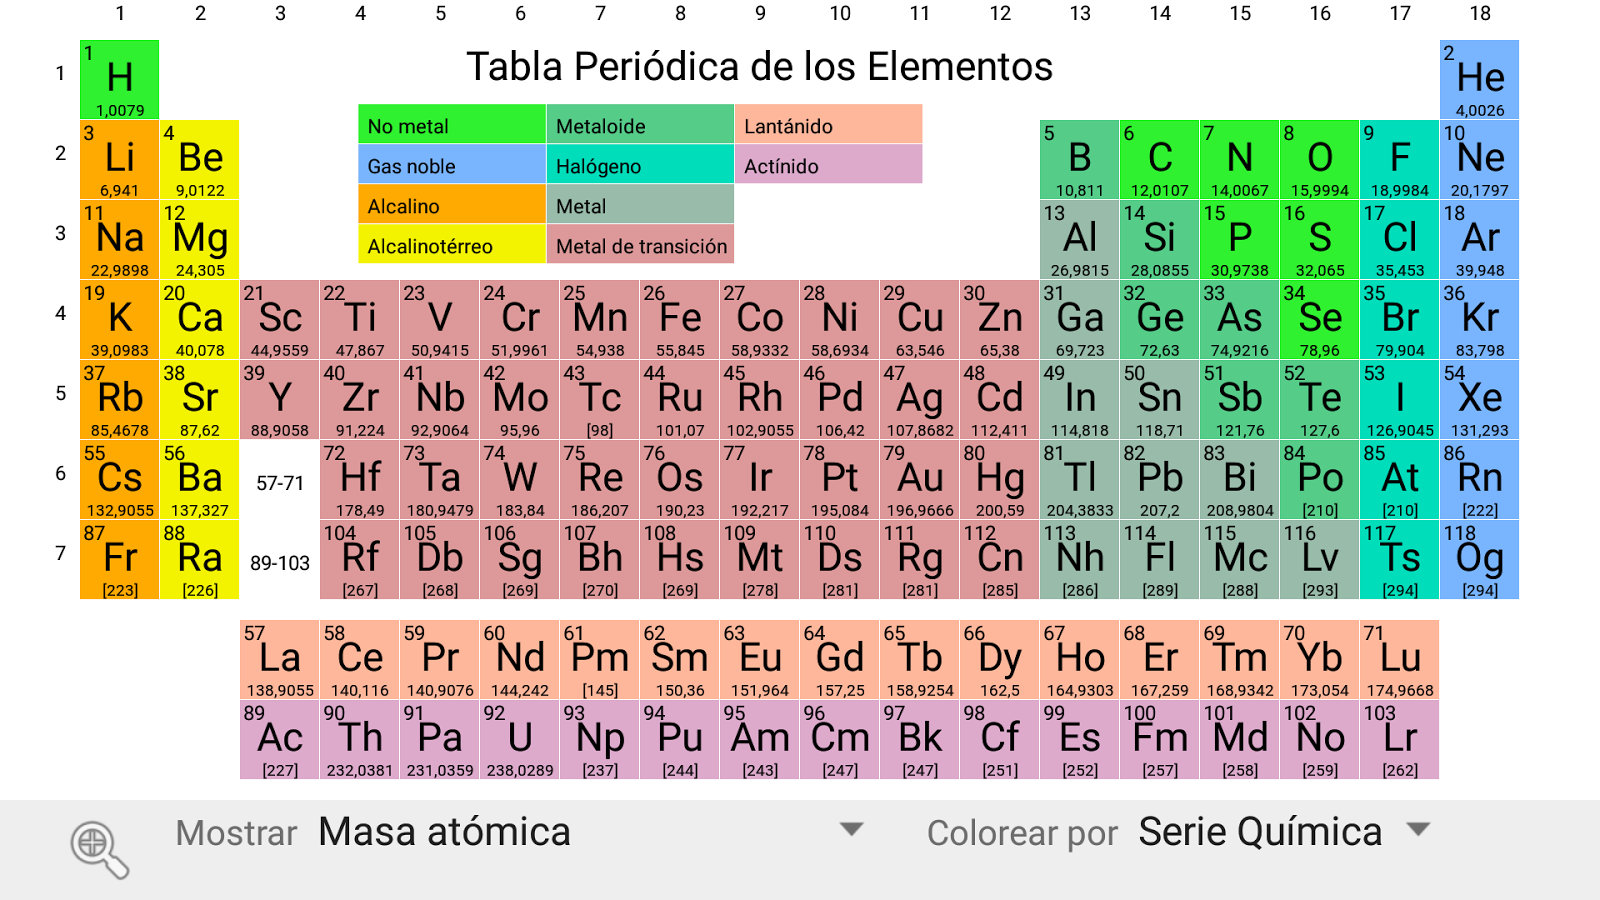 Tabla periodica hd 4k gallery periodic table and sample with tabla periodica hd 4k gallery periodic table and sample with tabla periodica hd gallery periodic table urtaz Gallery